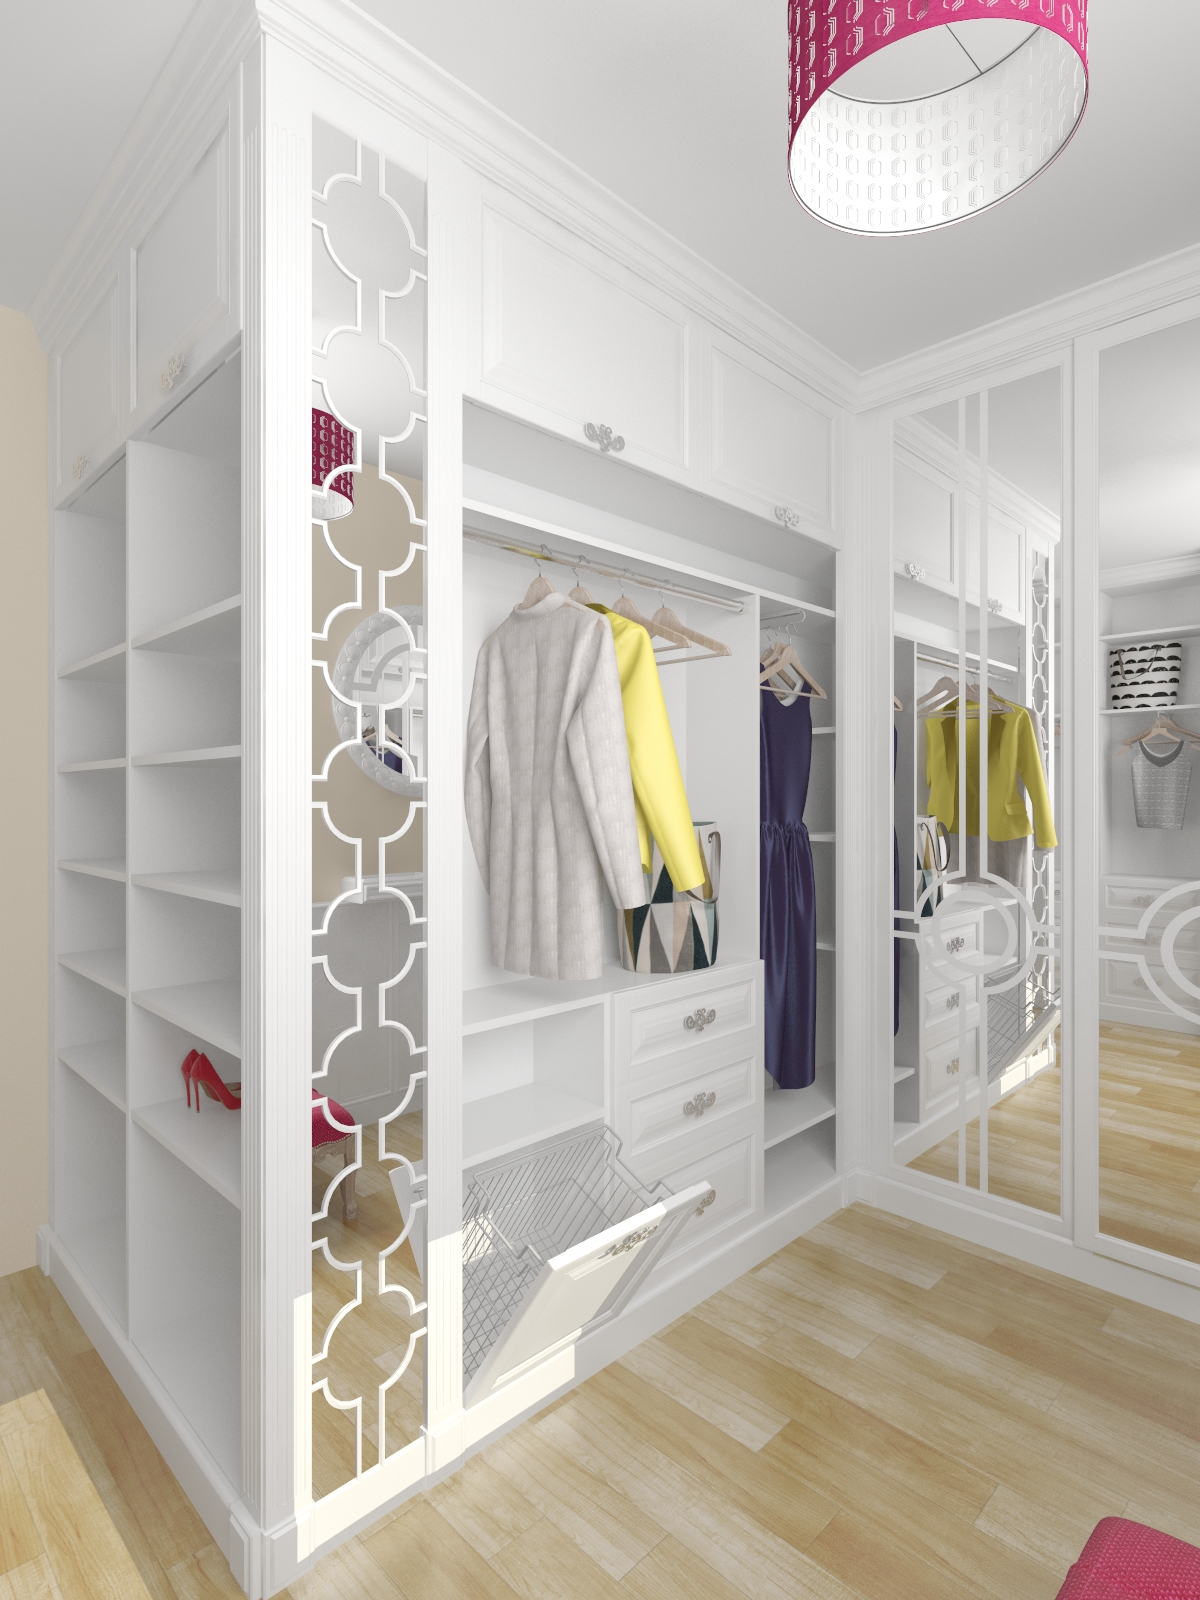 Model De Dressing Dressing Room Freelancers 3d